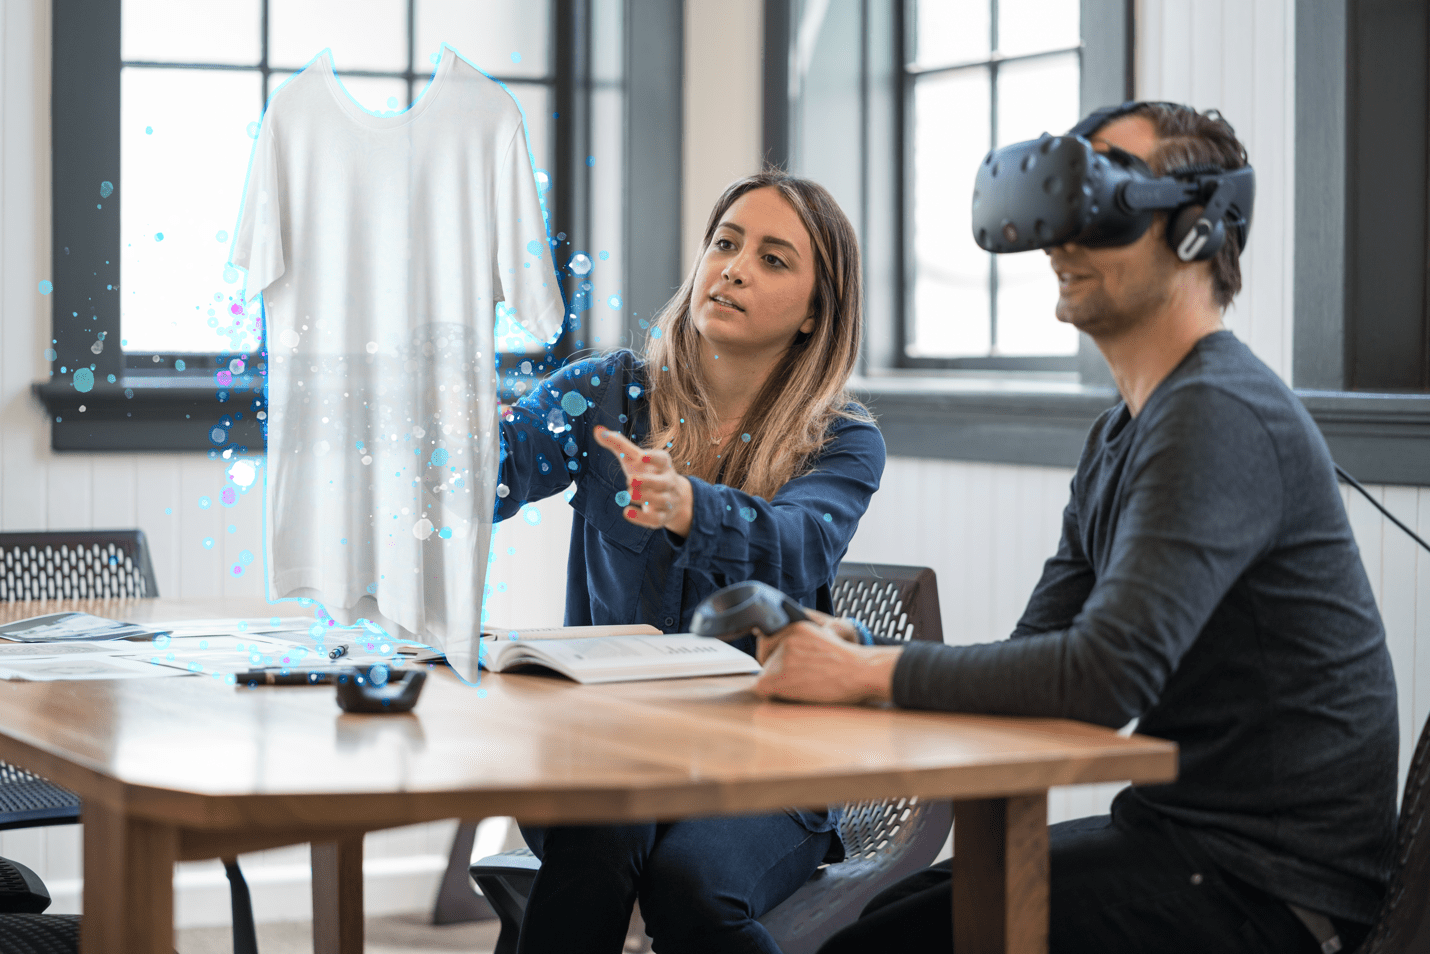 6 Ways XR Improves the Shopping Experience